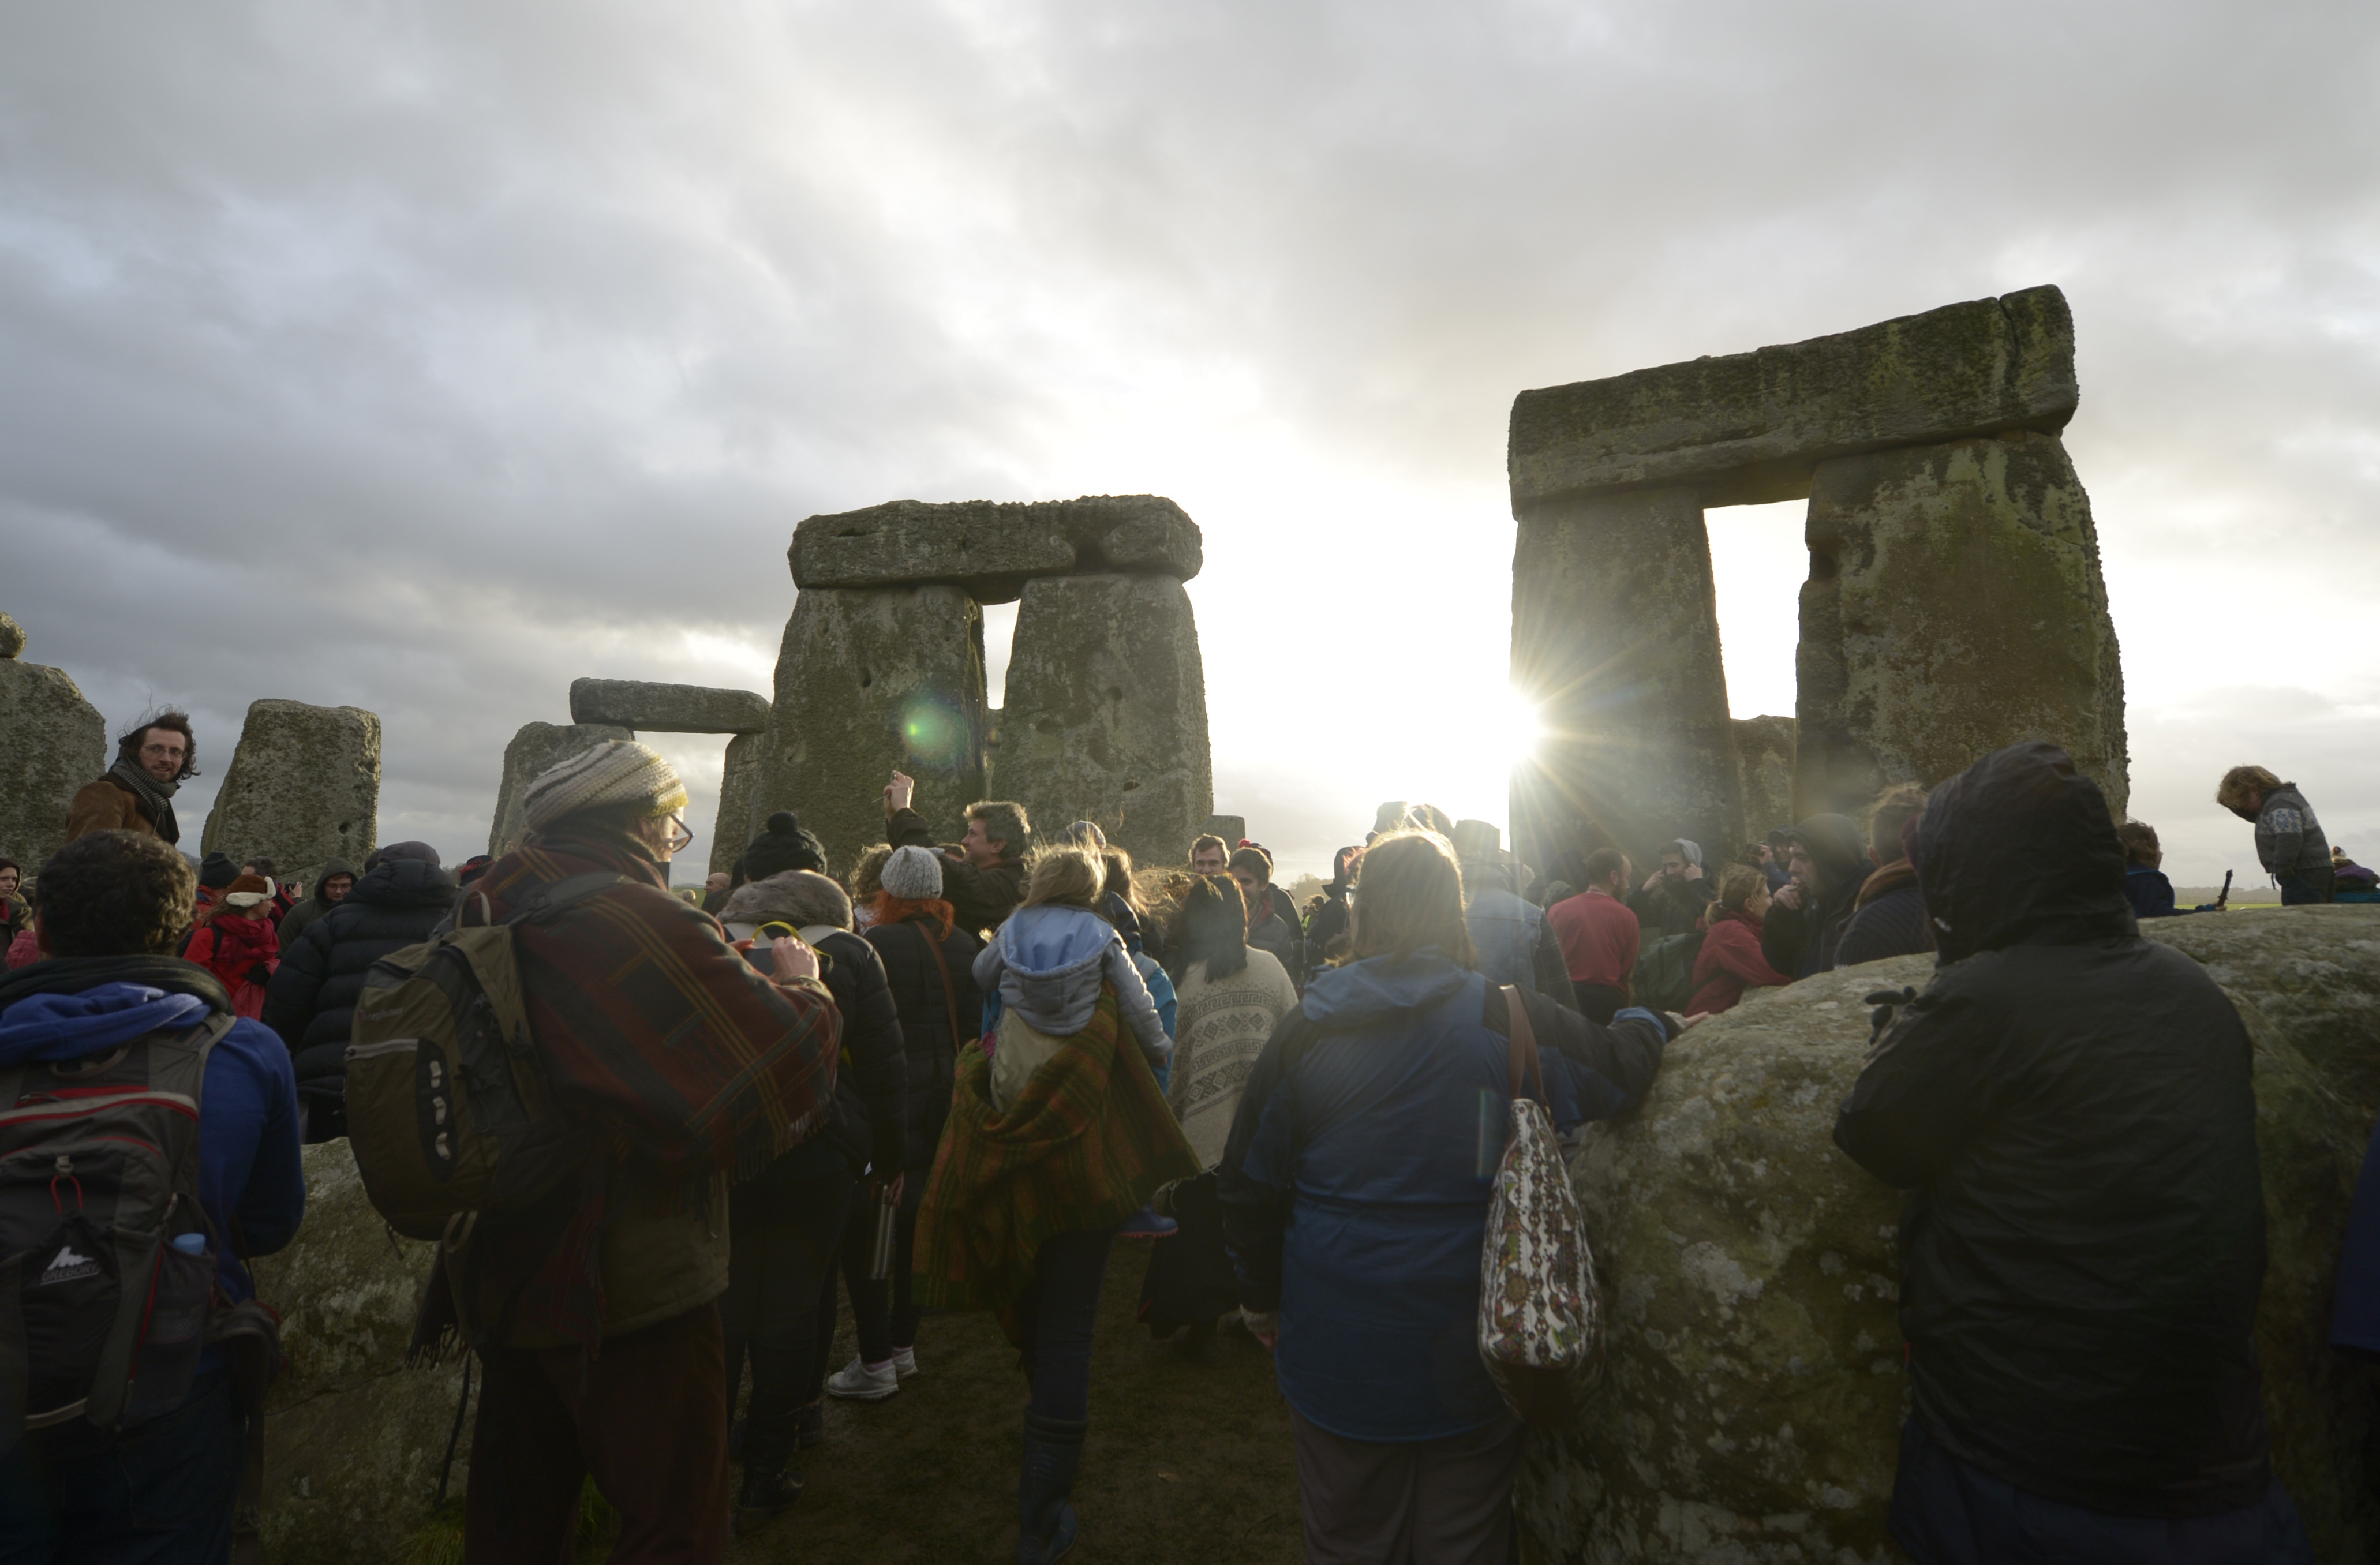 People gather at Stonehenge in Wiltshire on the Winter Solstice to witness the sunrise on the shortest day of the year, on Dec. 22, 2015.